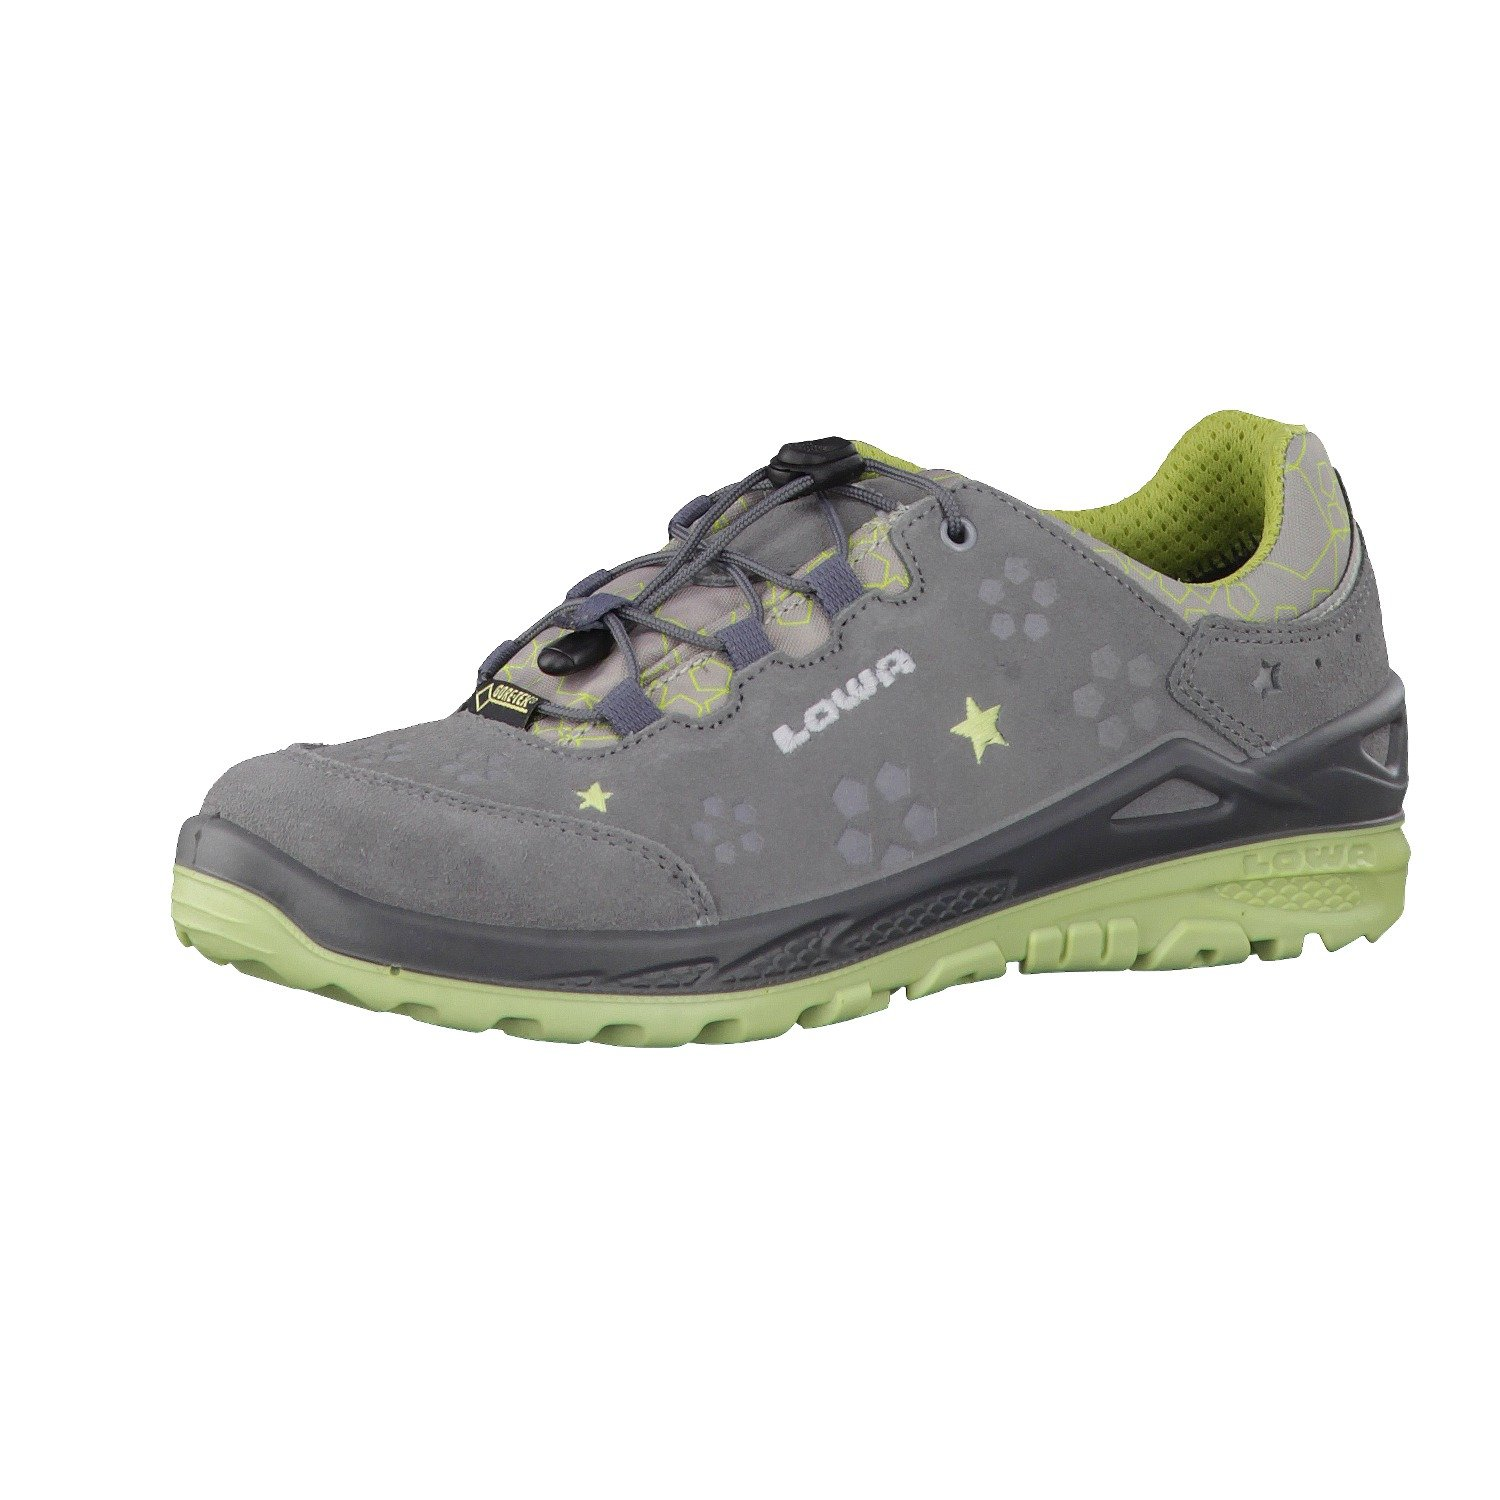 co uk Lo LowaMarieGtx® KidsGirl's MintAmazon ShoesGrey And Y76gyvmfIb